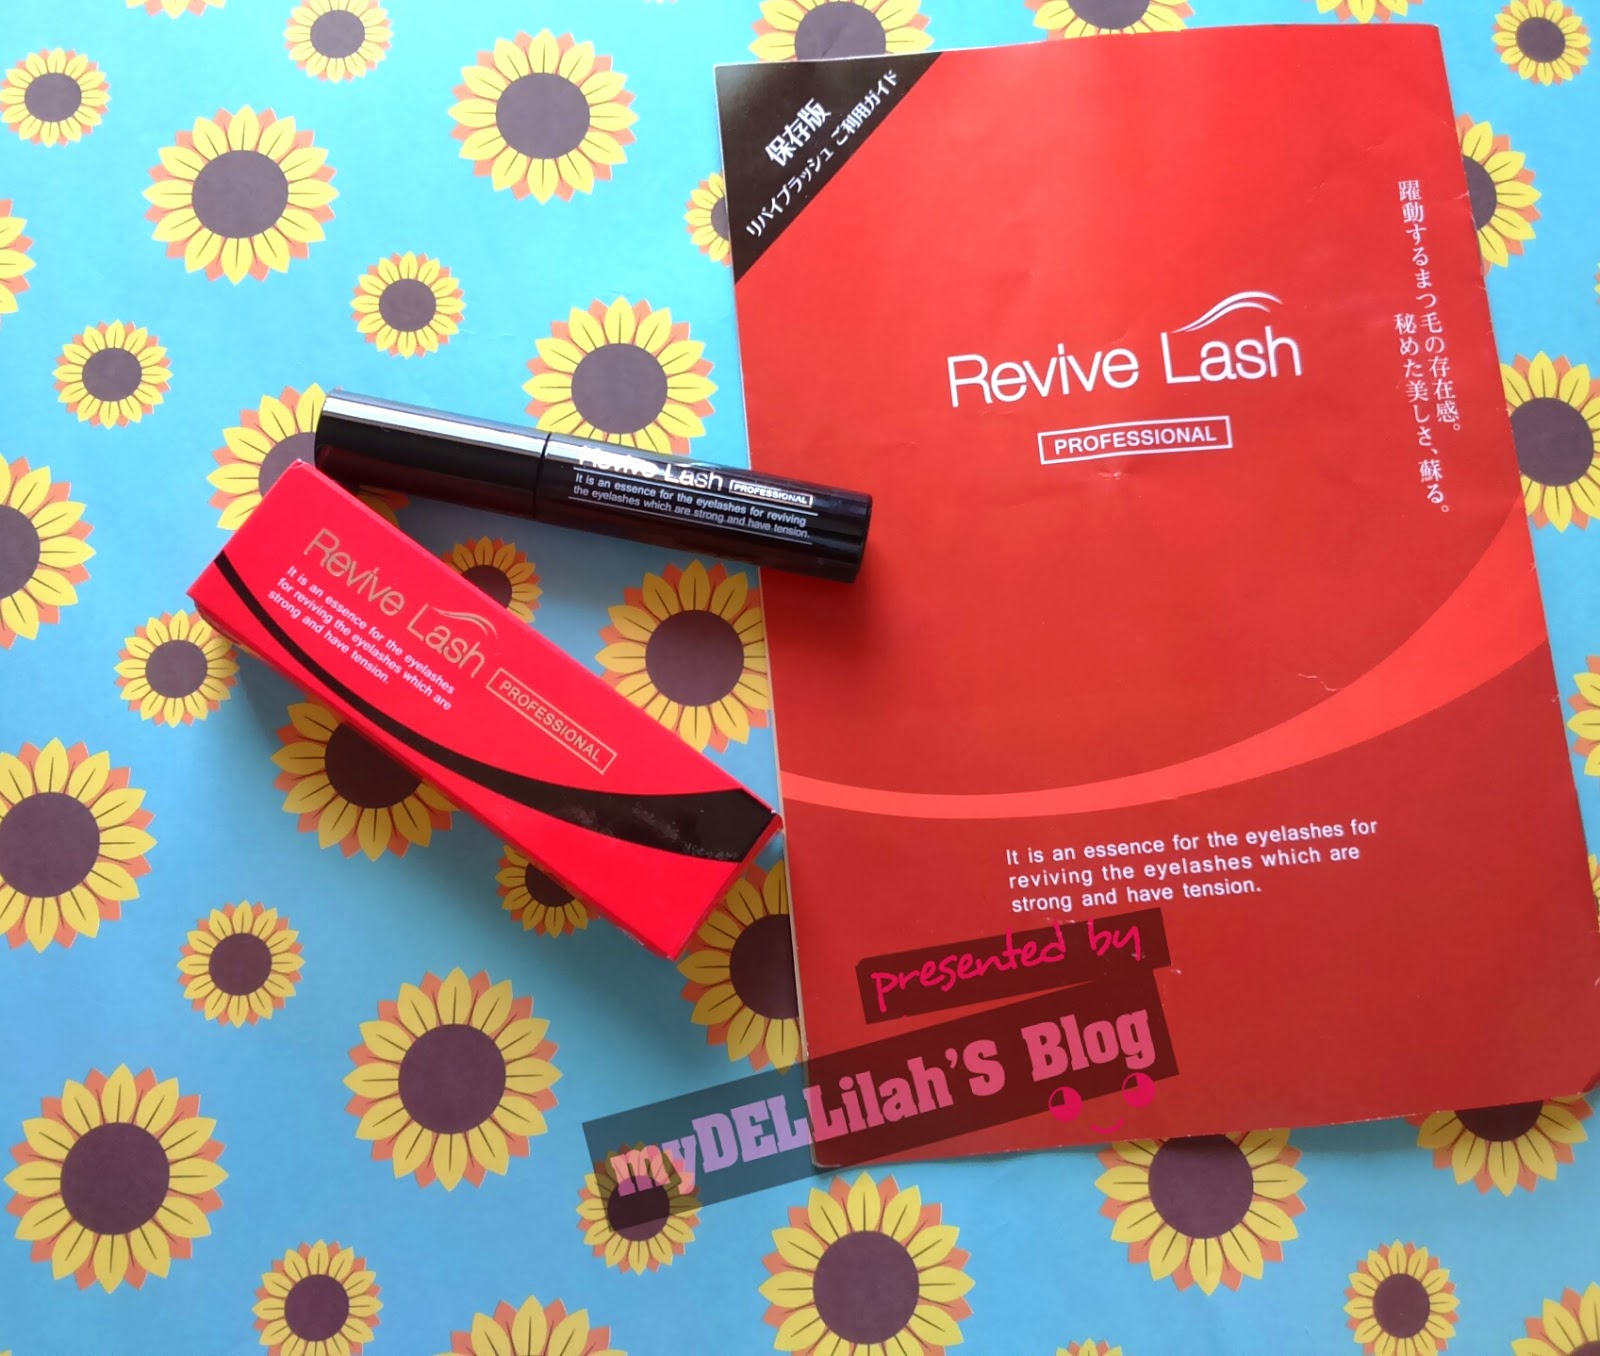 Revive Lash Review